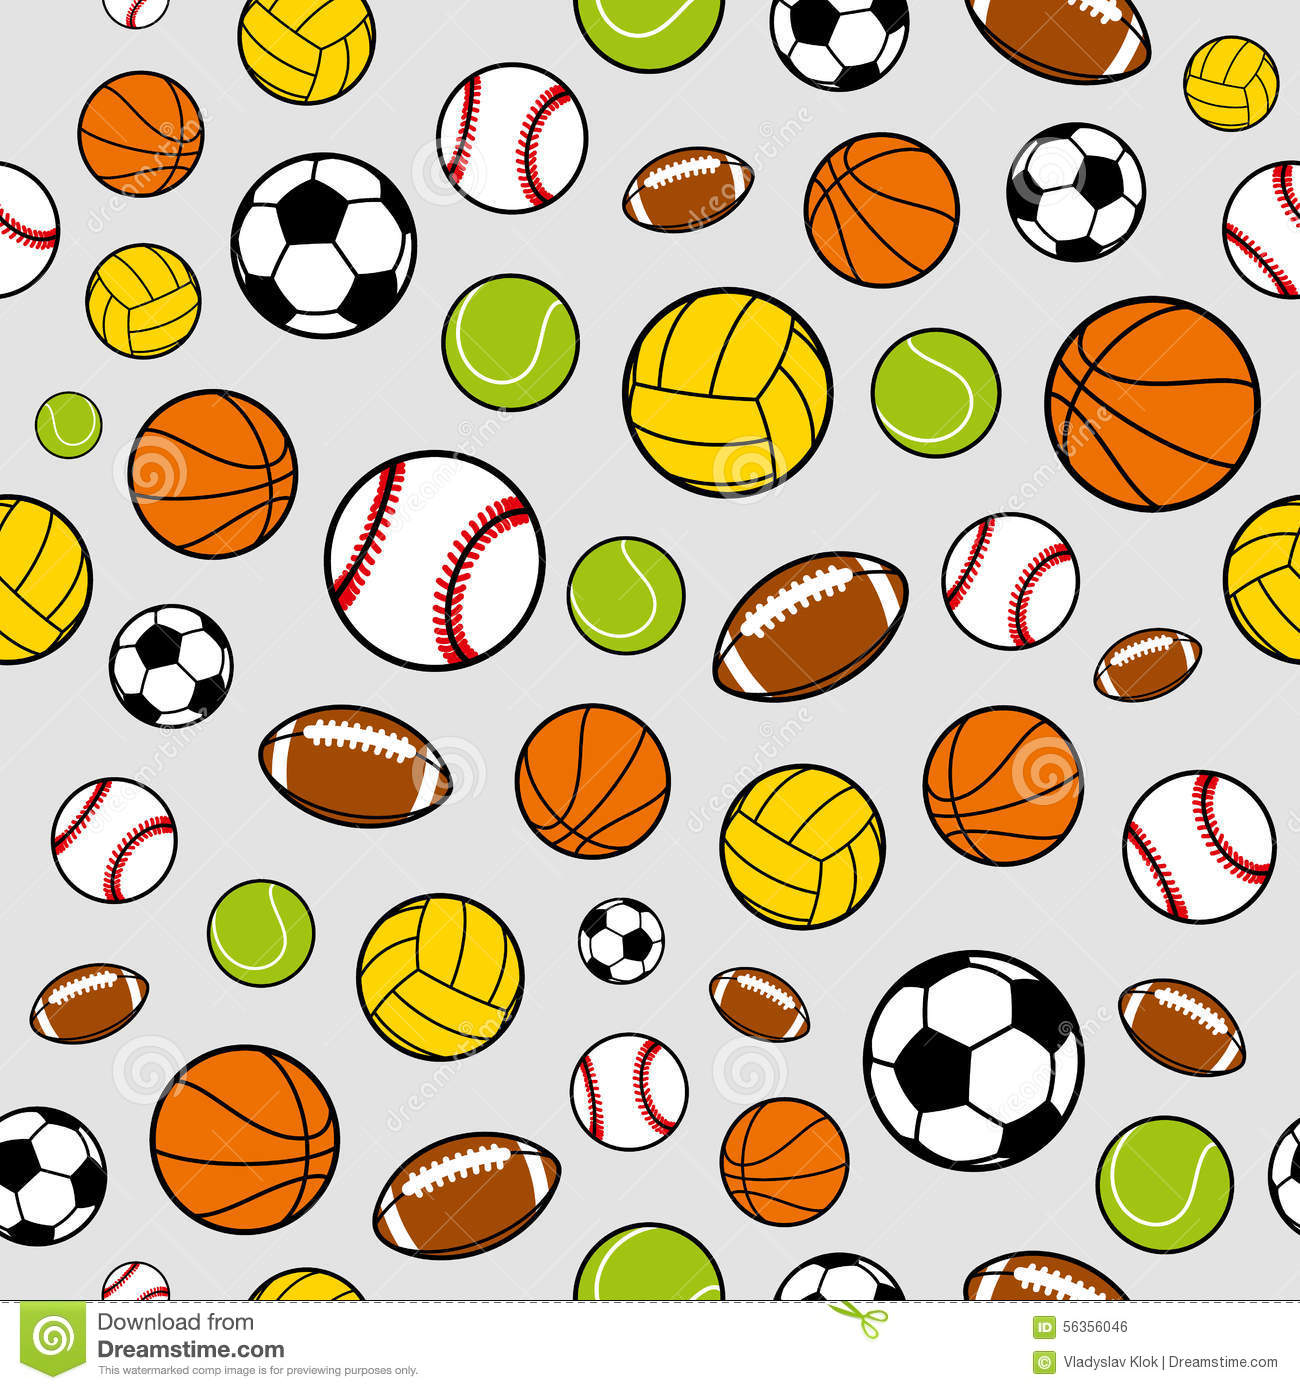 Vector Sports Balls Seamless Background, Sports Equipment